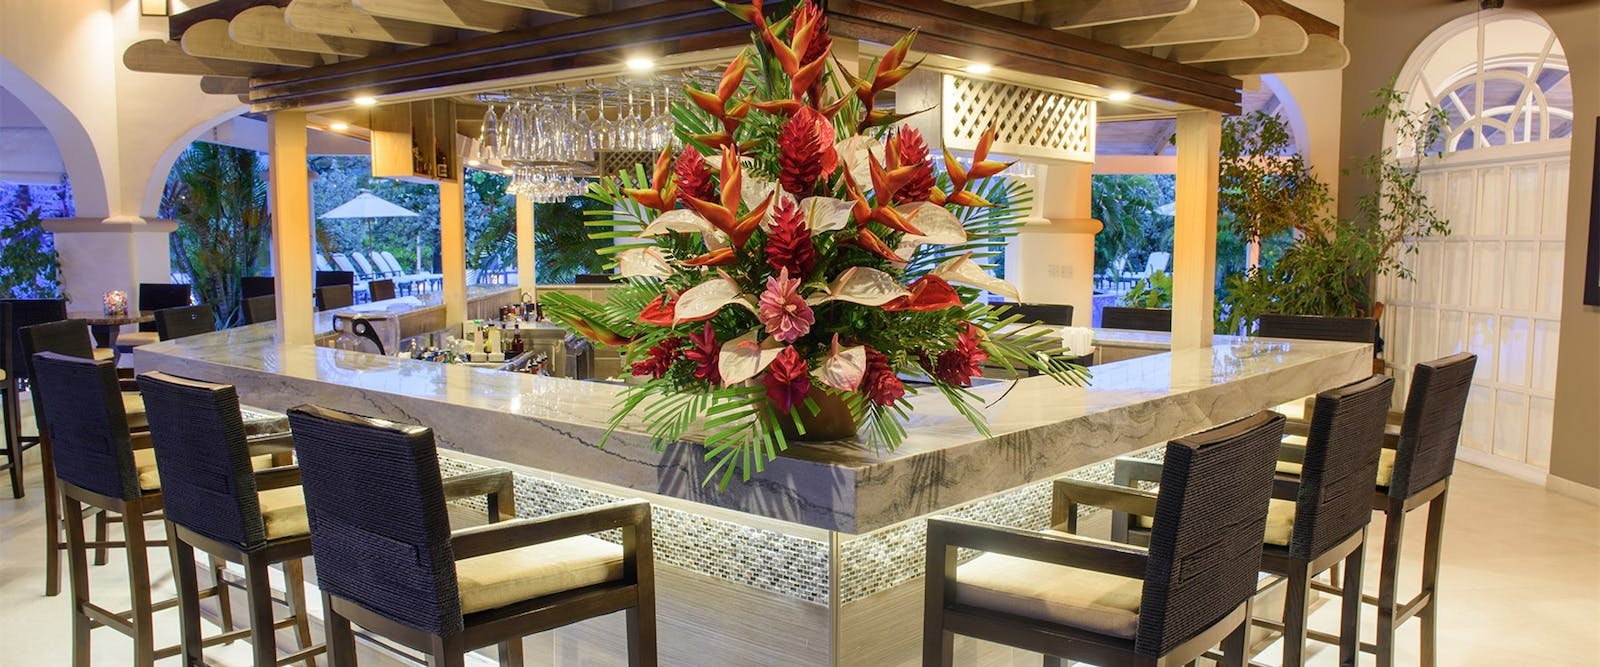 The bar at Spice Island Beach Resort, Grenada